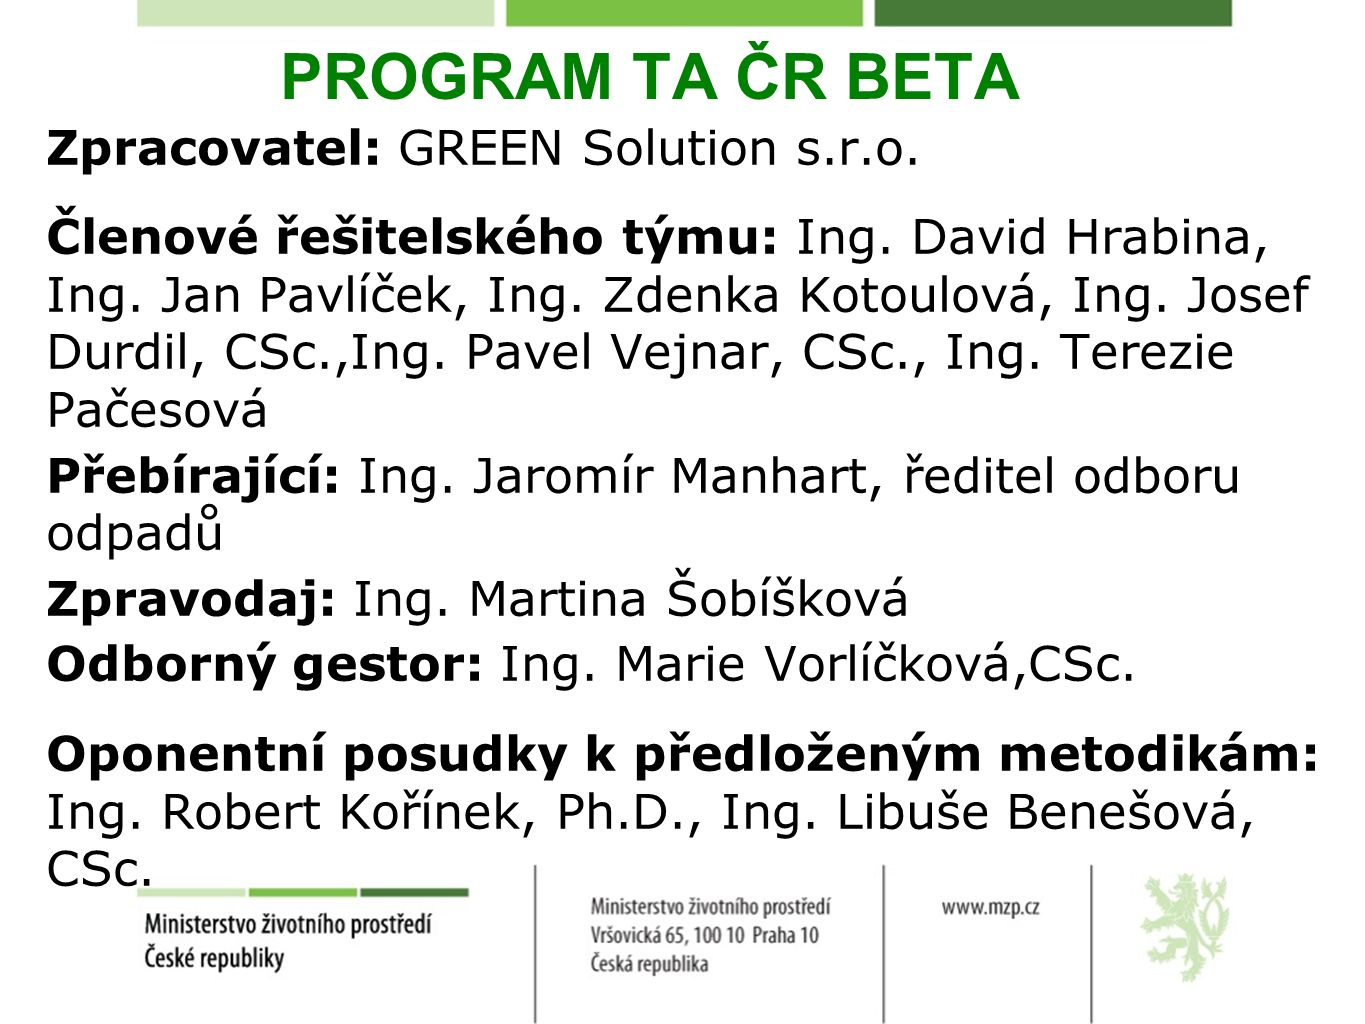 PROGRAM TA ČR BETA